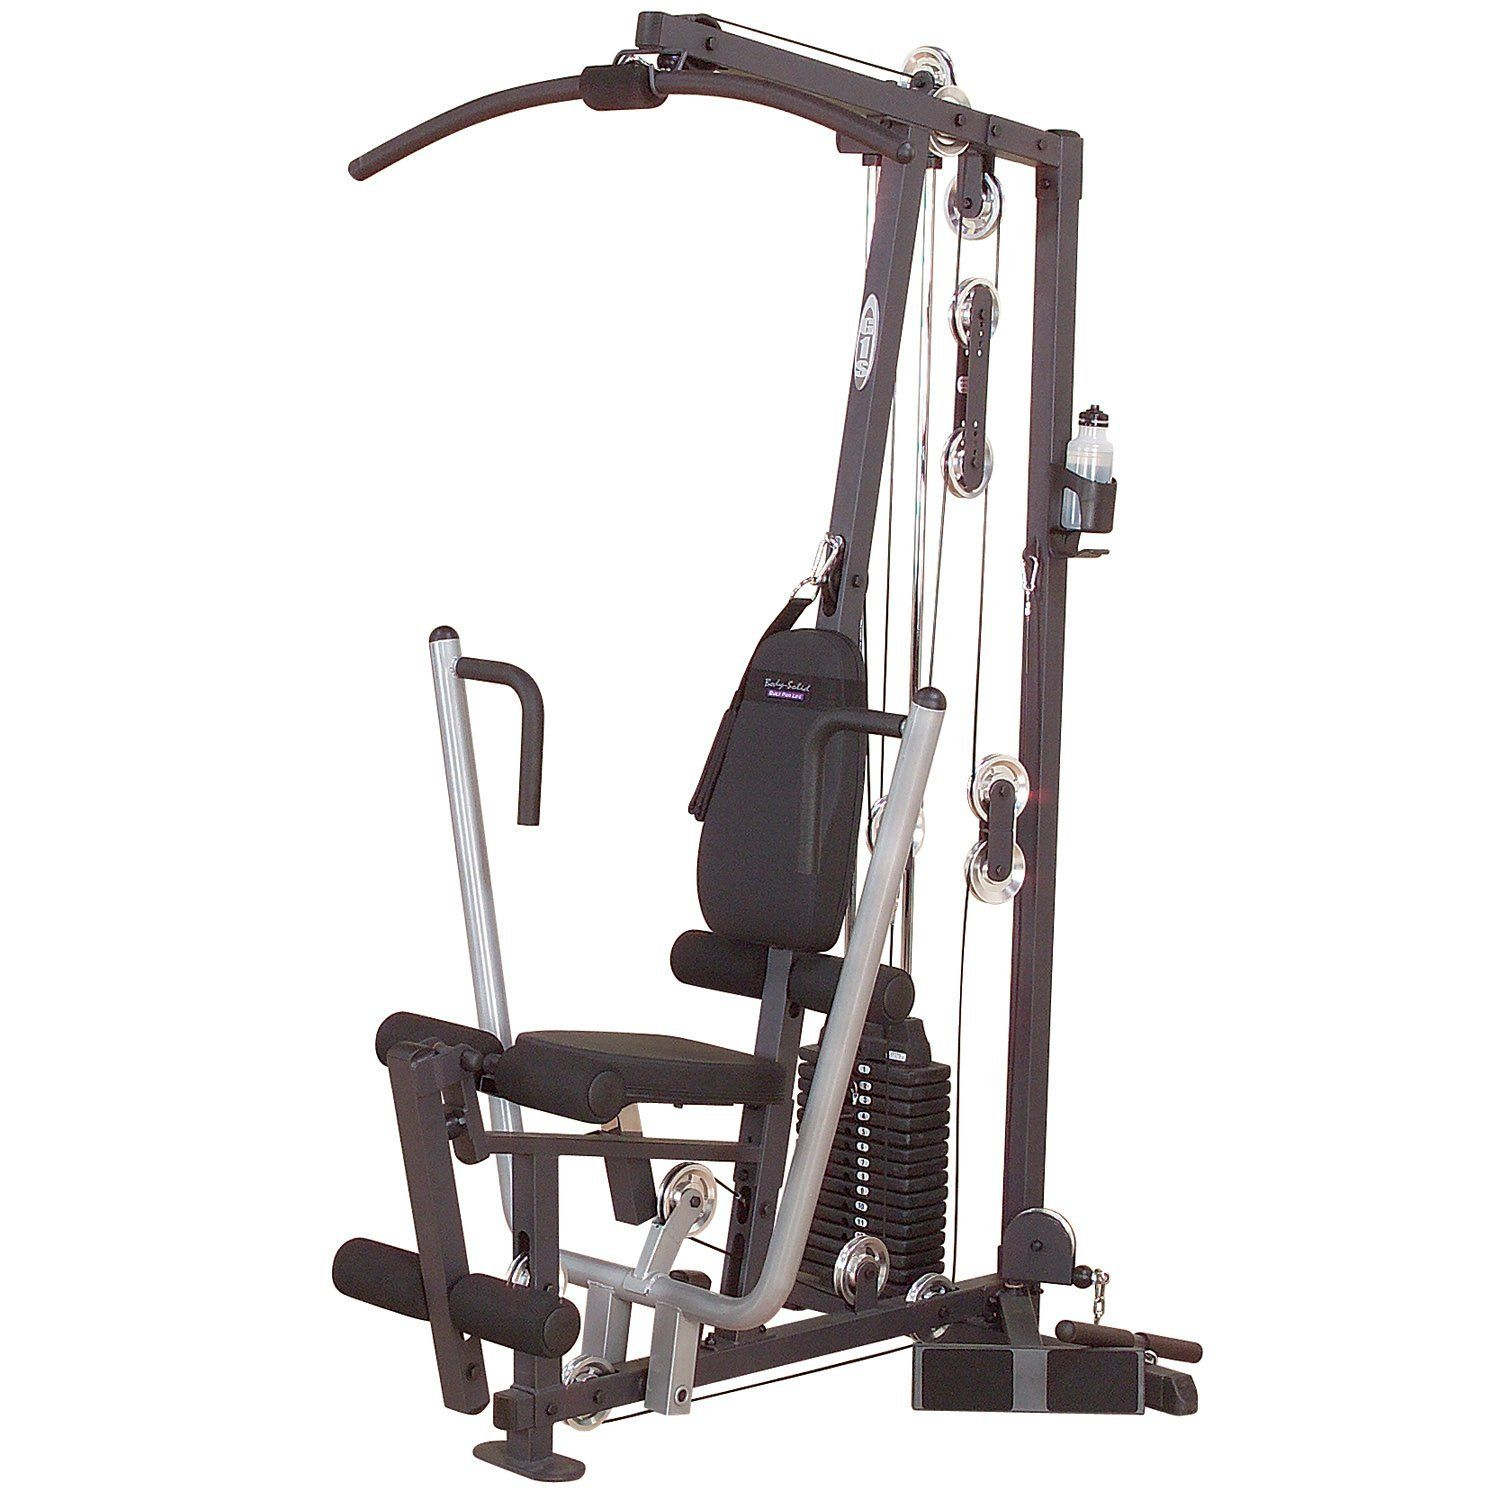 BodySolid G1S Selectorized Home Gym Sports